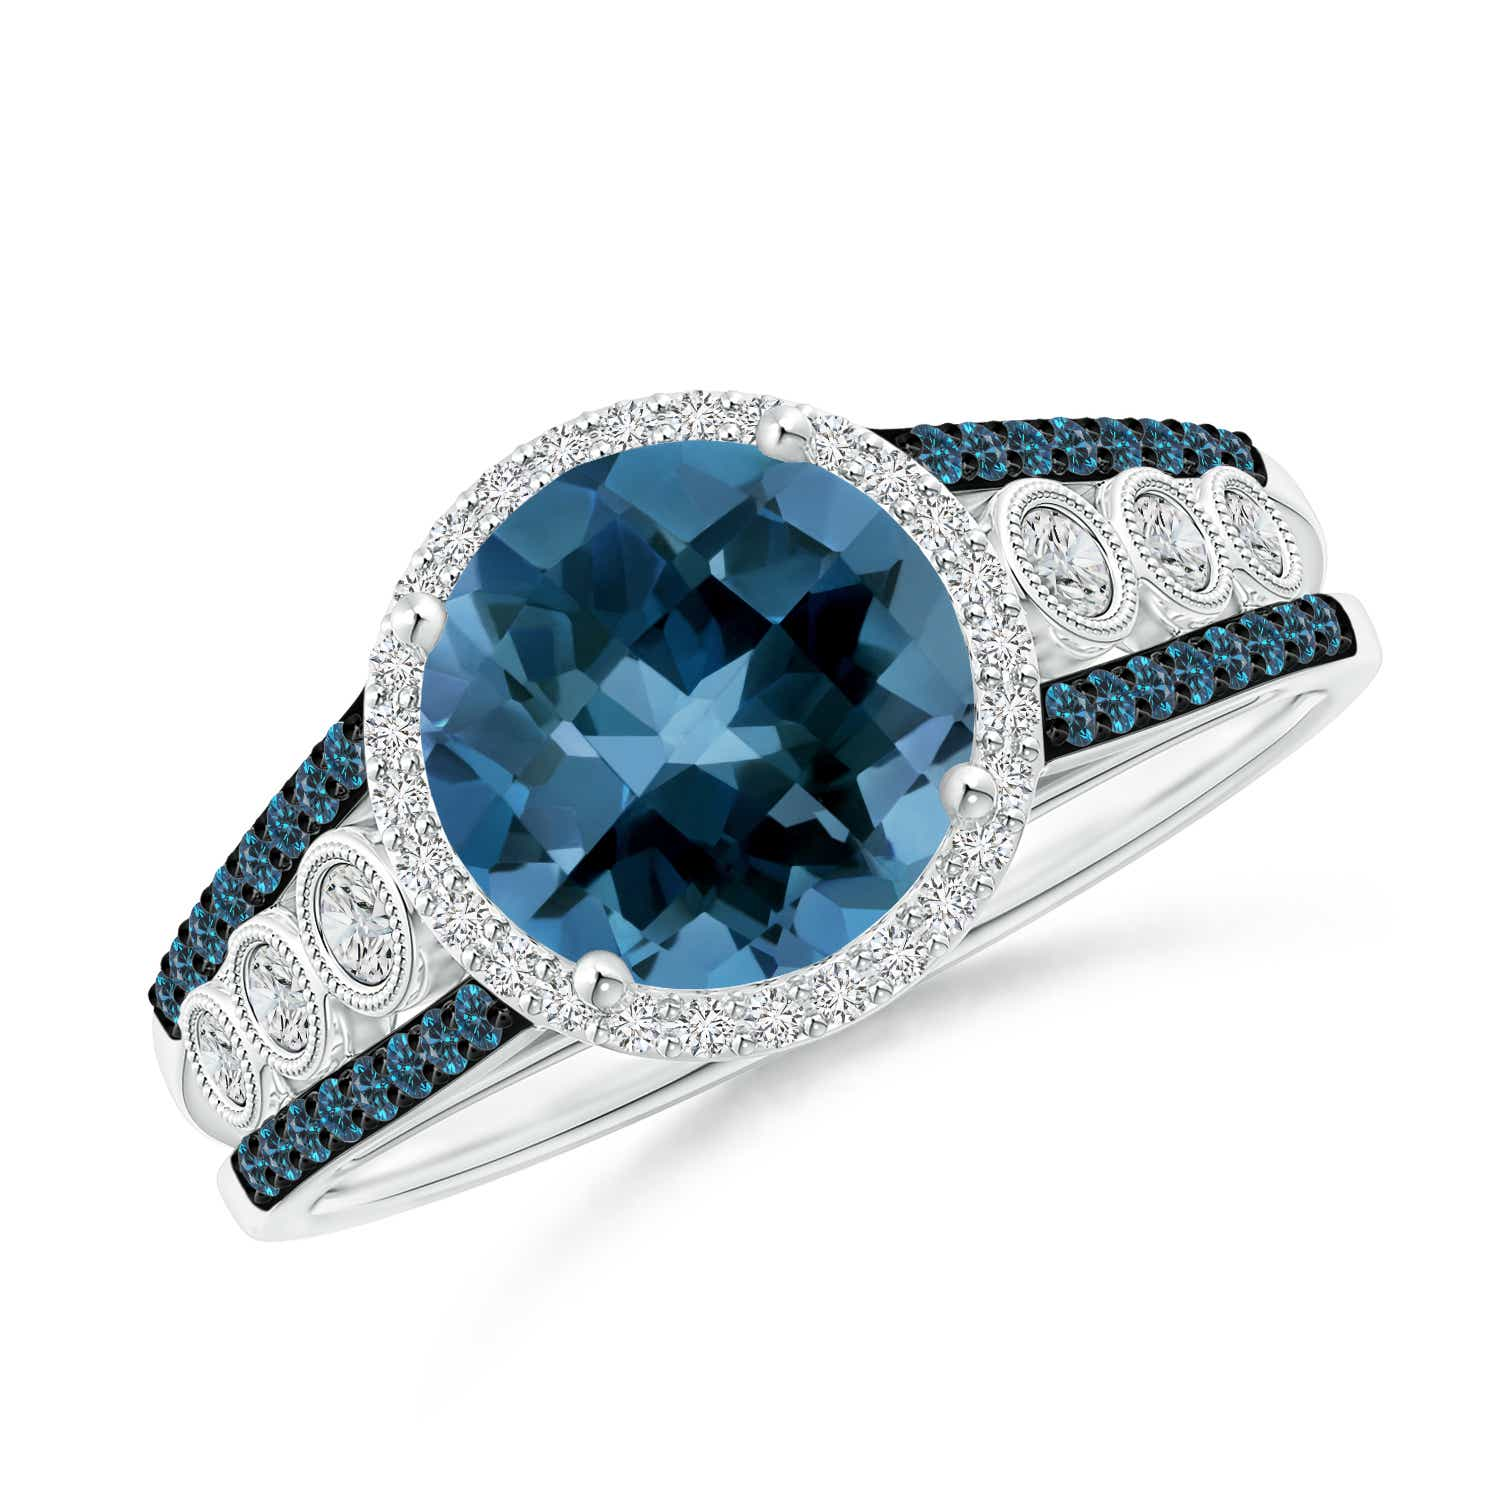 Round London Blue Topaz Halo Regal Ring with Diamond Accents - Angara.com